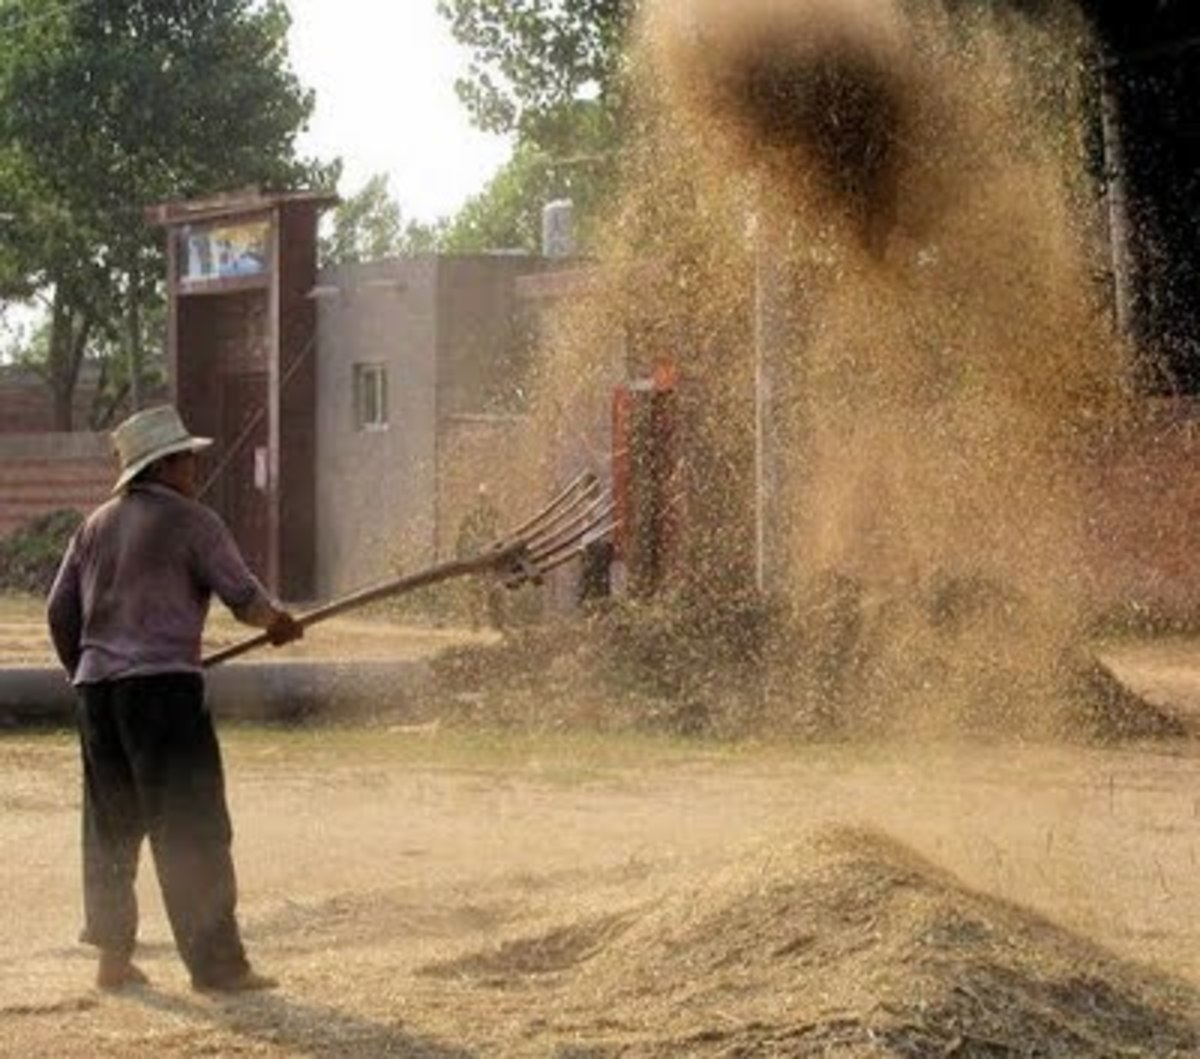 The Farmer Winnowing Wheat, Wind separates the chaffs from the seeds.